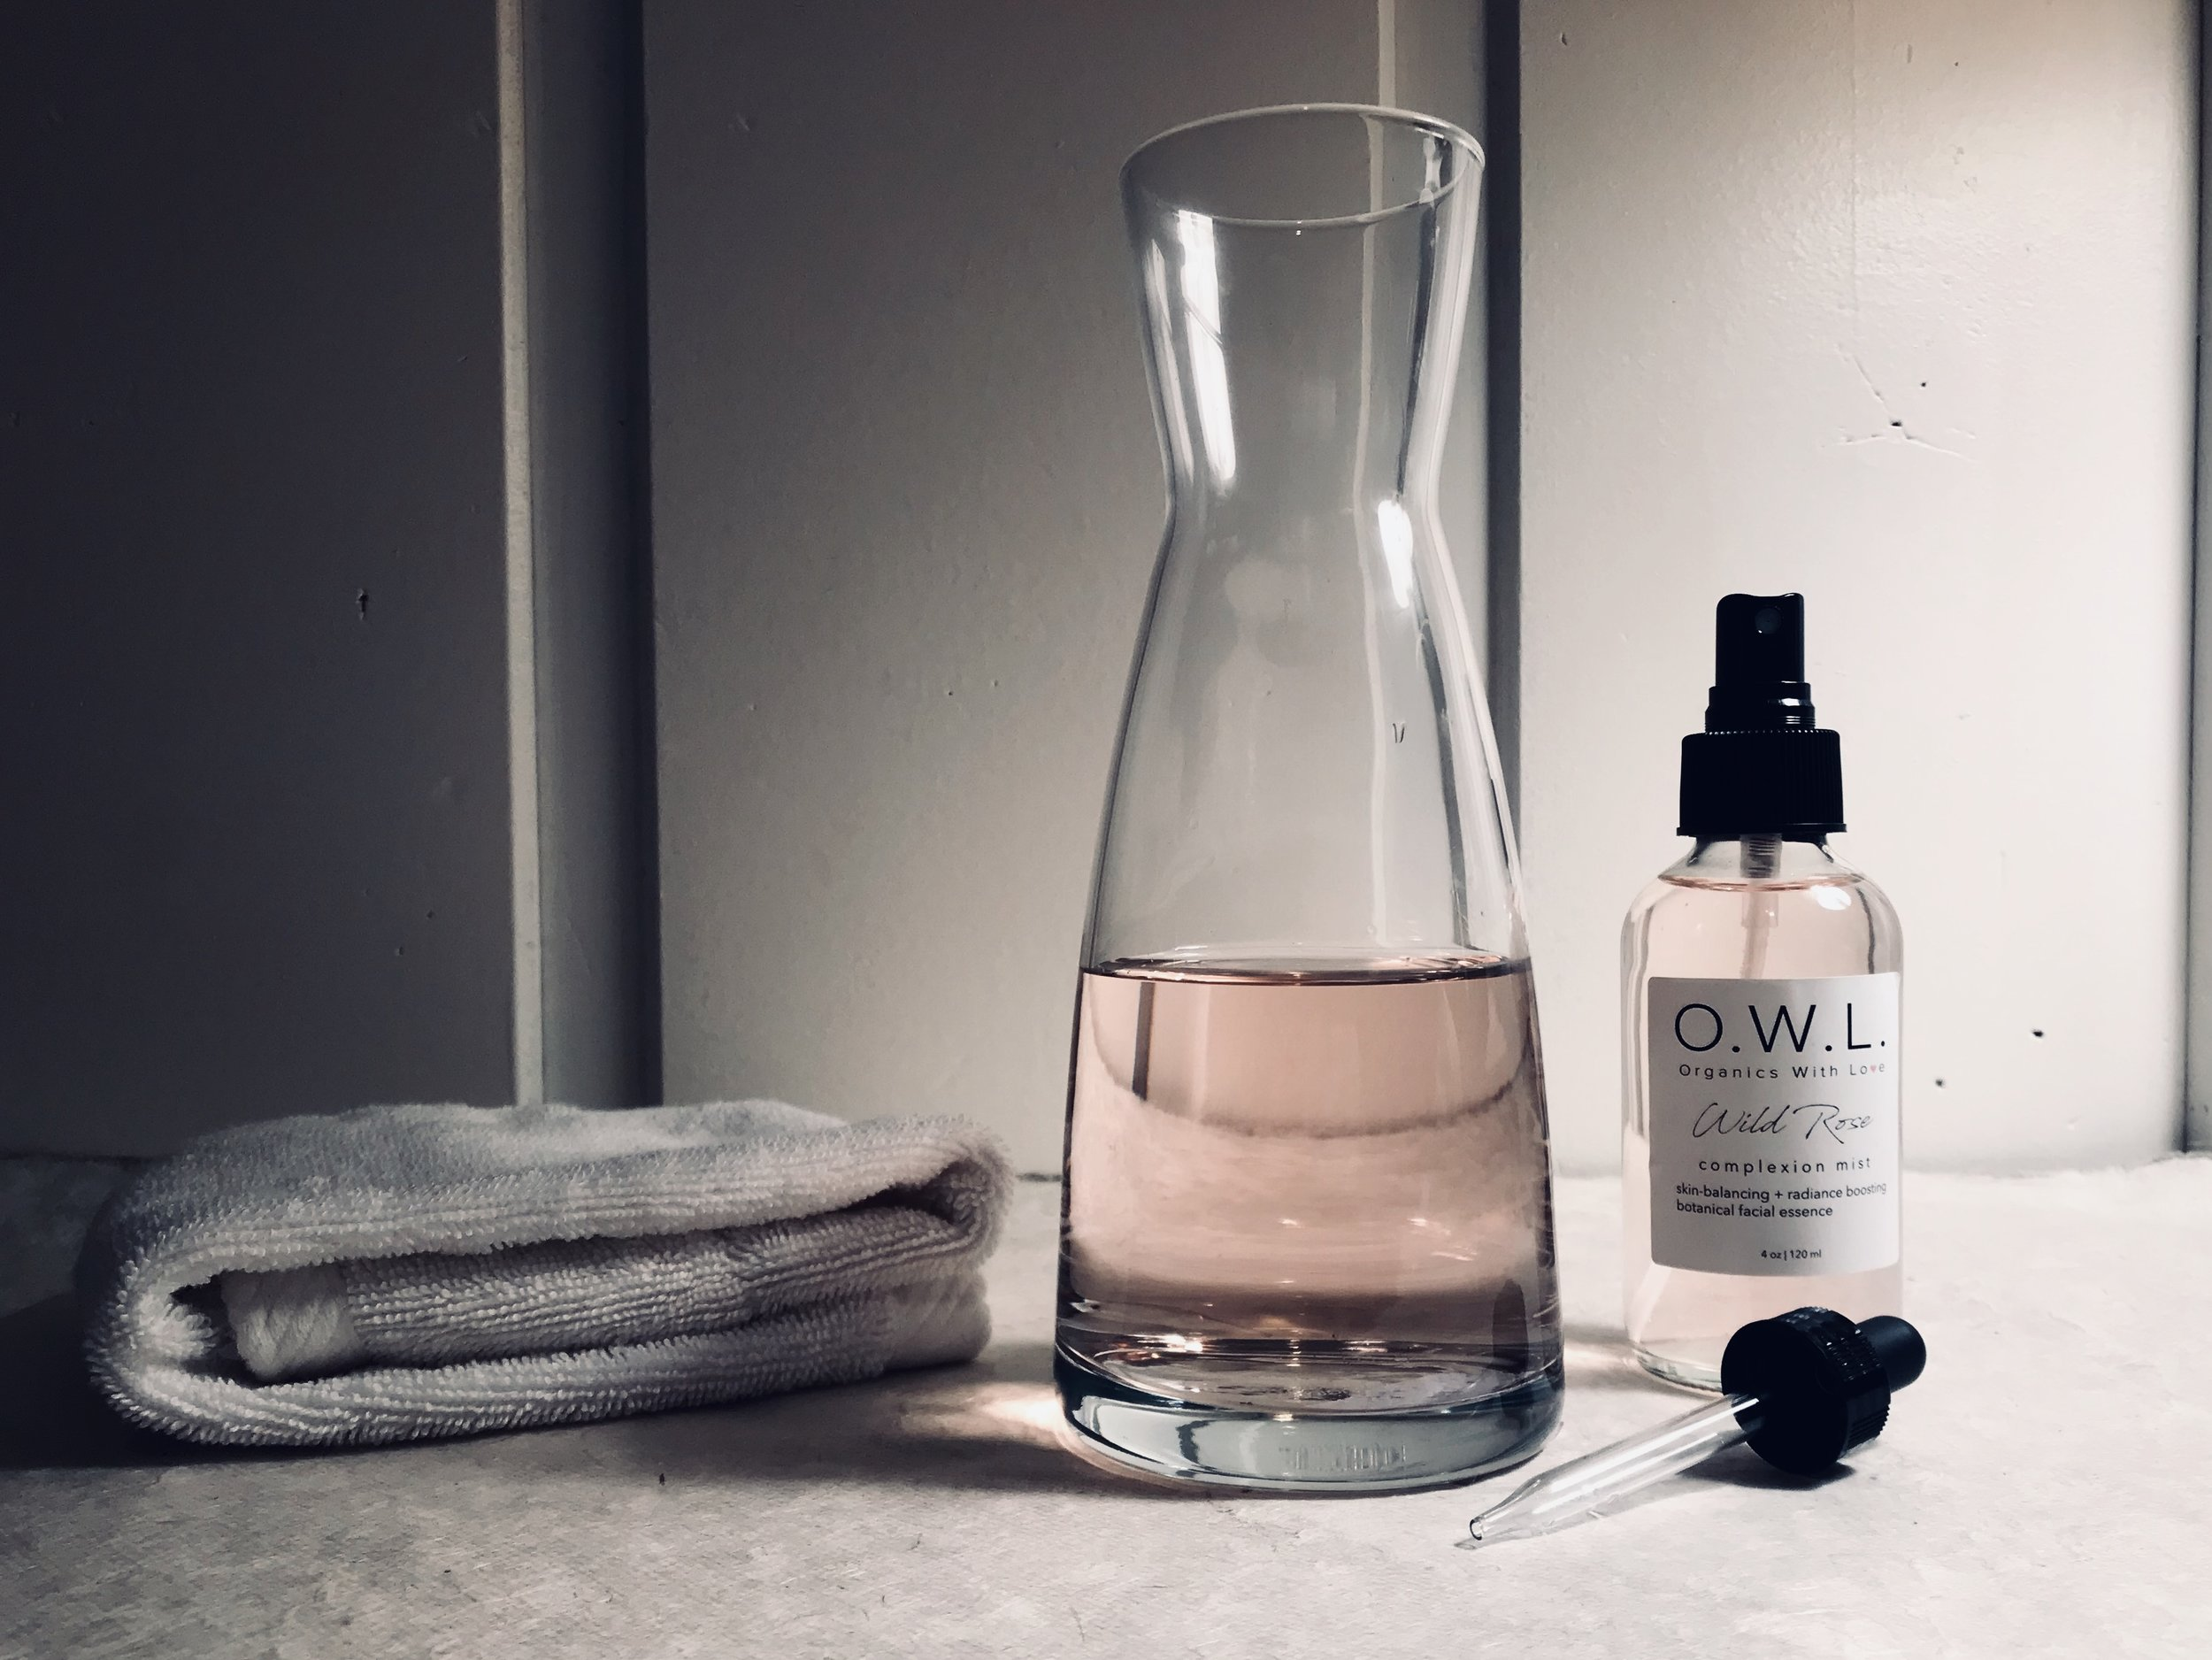 Experience Wild Rose - Mist freely over cleansed skin, before applying oils, for enhanced hydration and nutrient absorption. Mist face again after makeup for a beautiful, healthy glow.